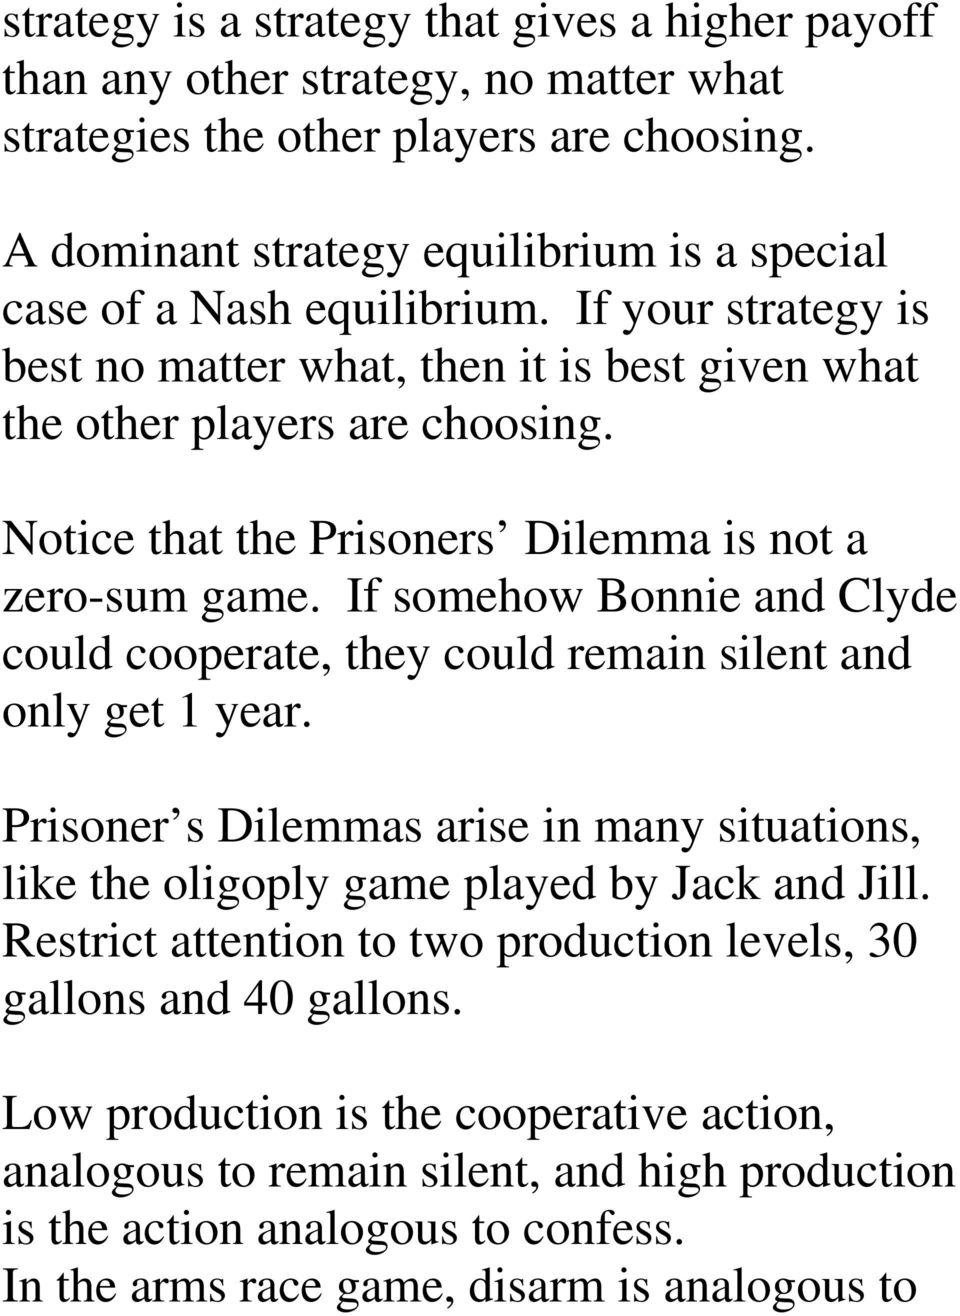 Notice that the Prisoners Dilemma is not a zero-sum game. If somehow Bonnie and Clyde could cooperate, they could remain silent and only get 1 year.